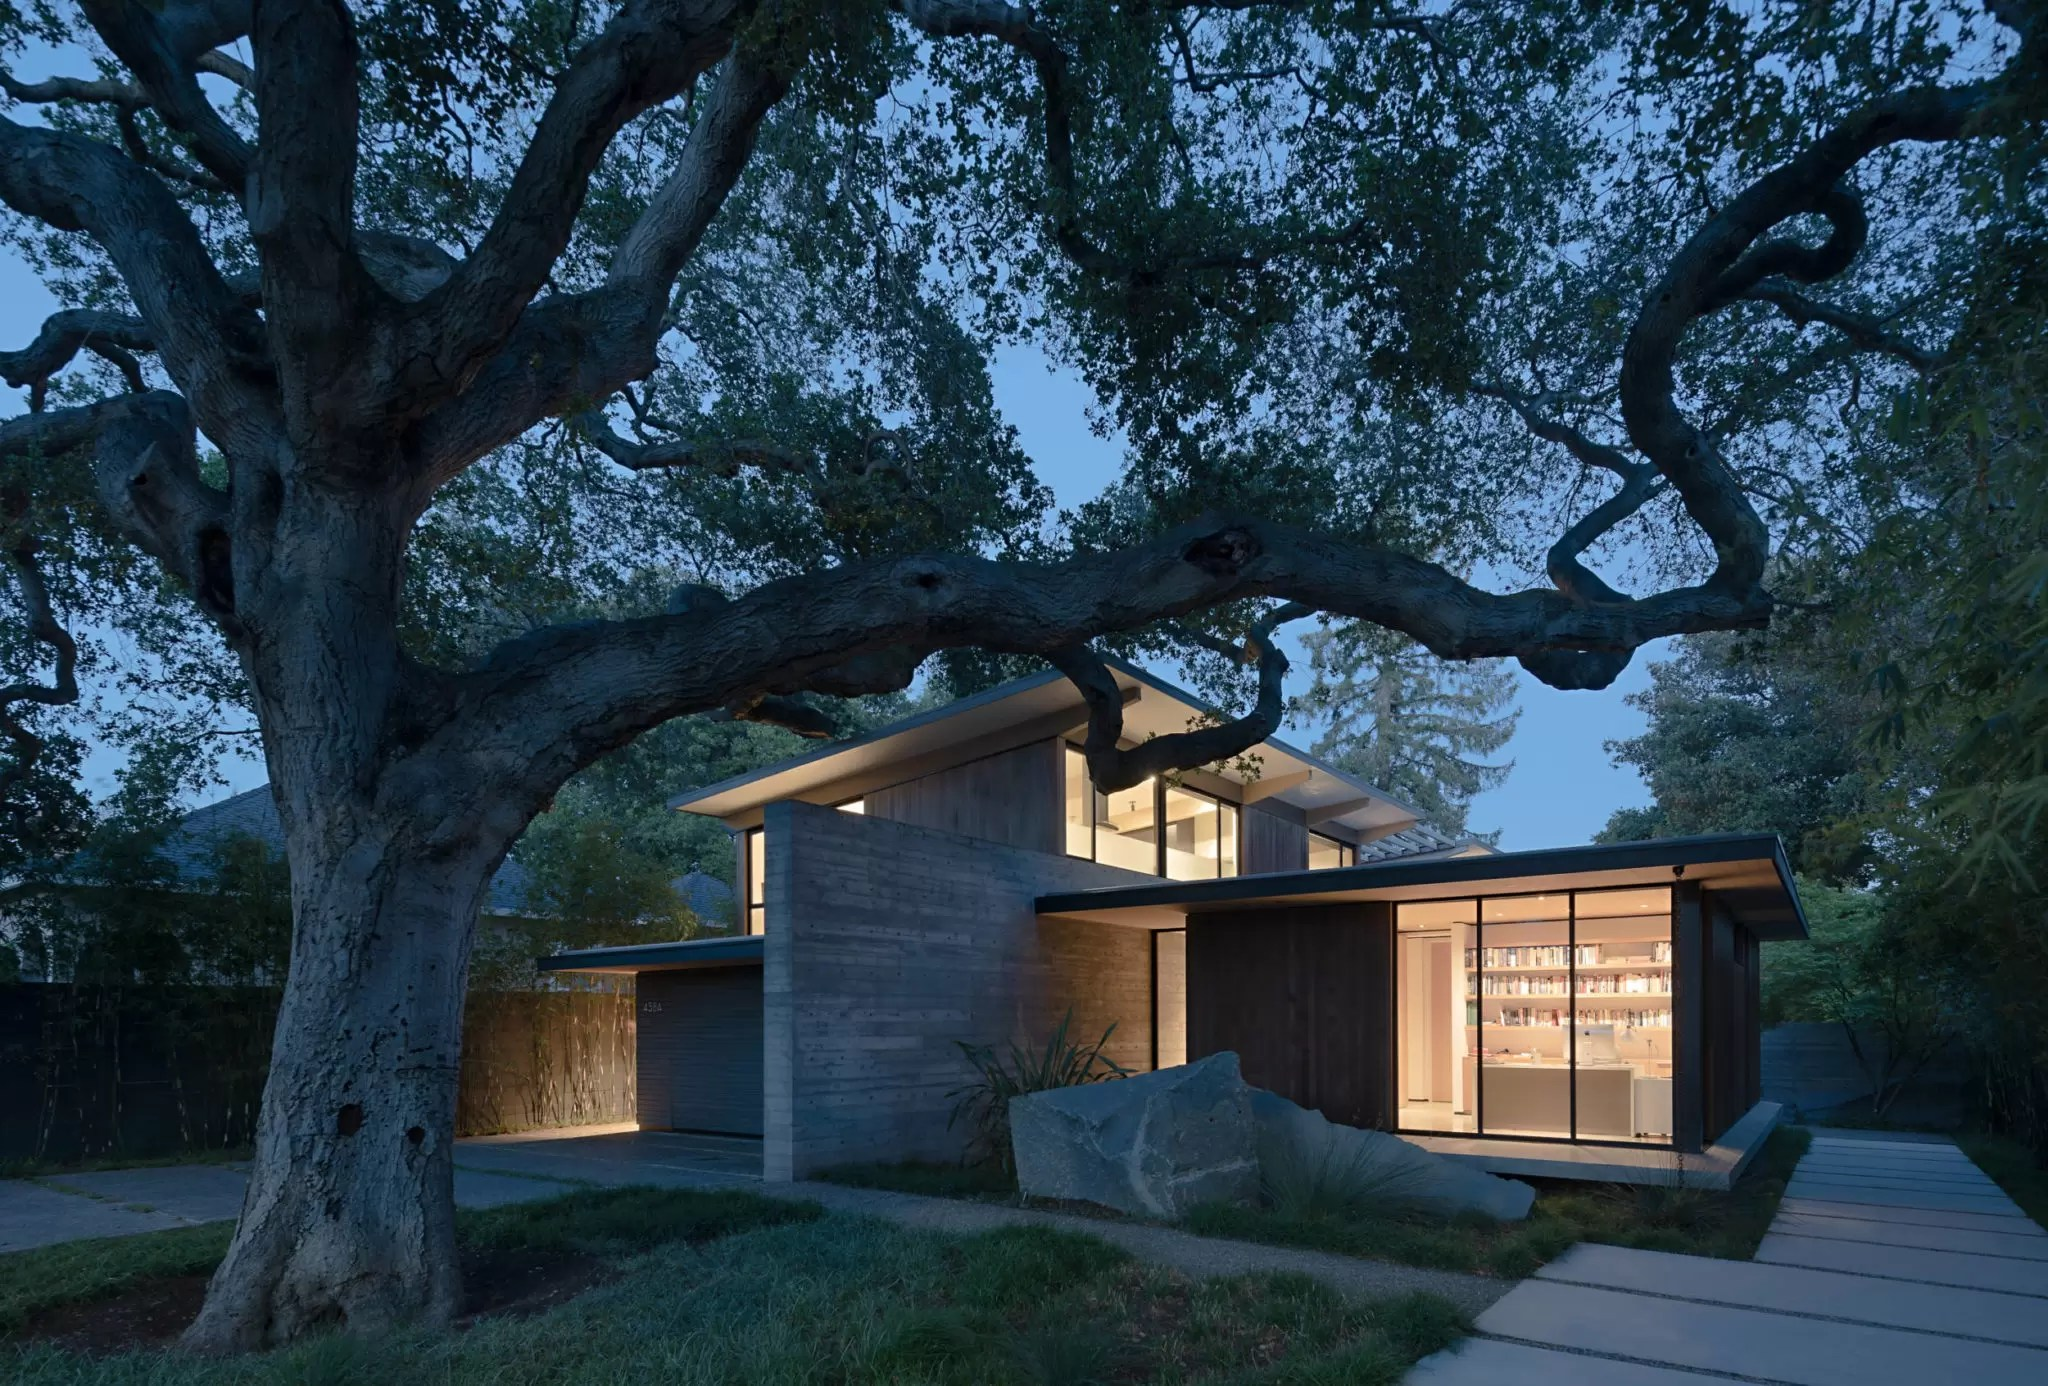 THE SANCTUARY / feldmanarchitects